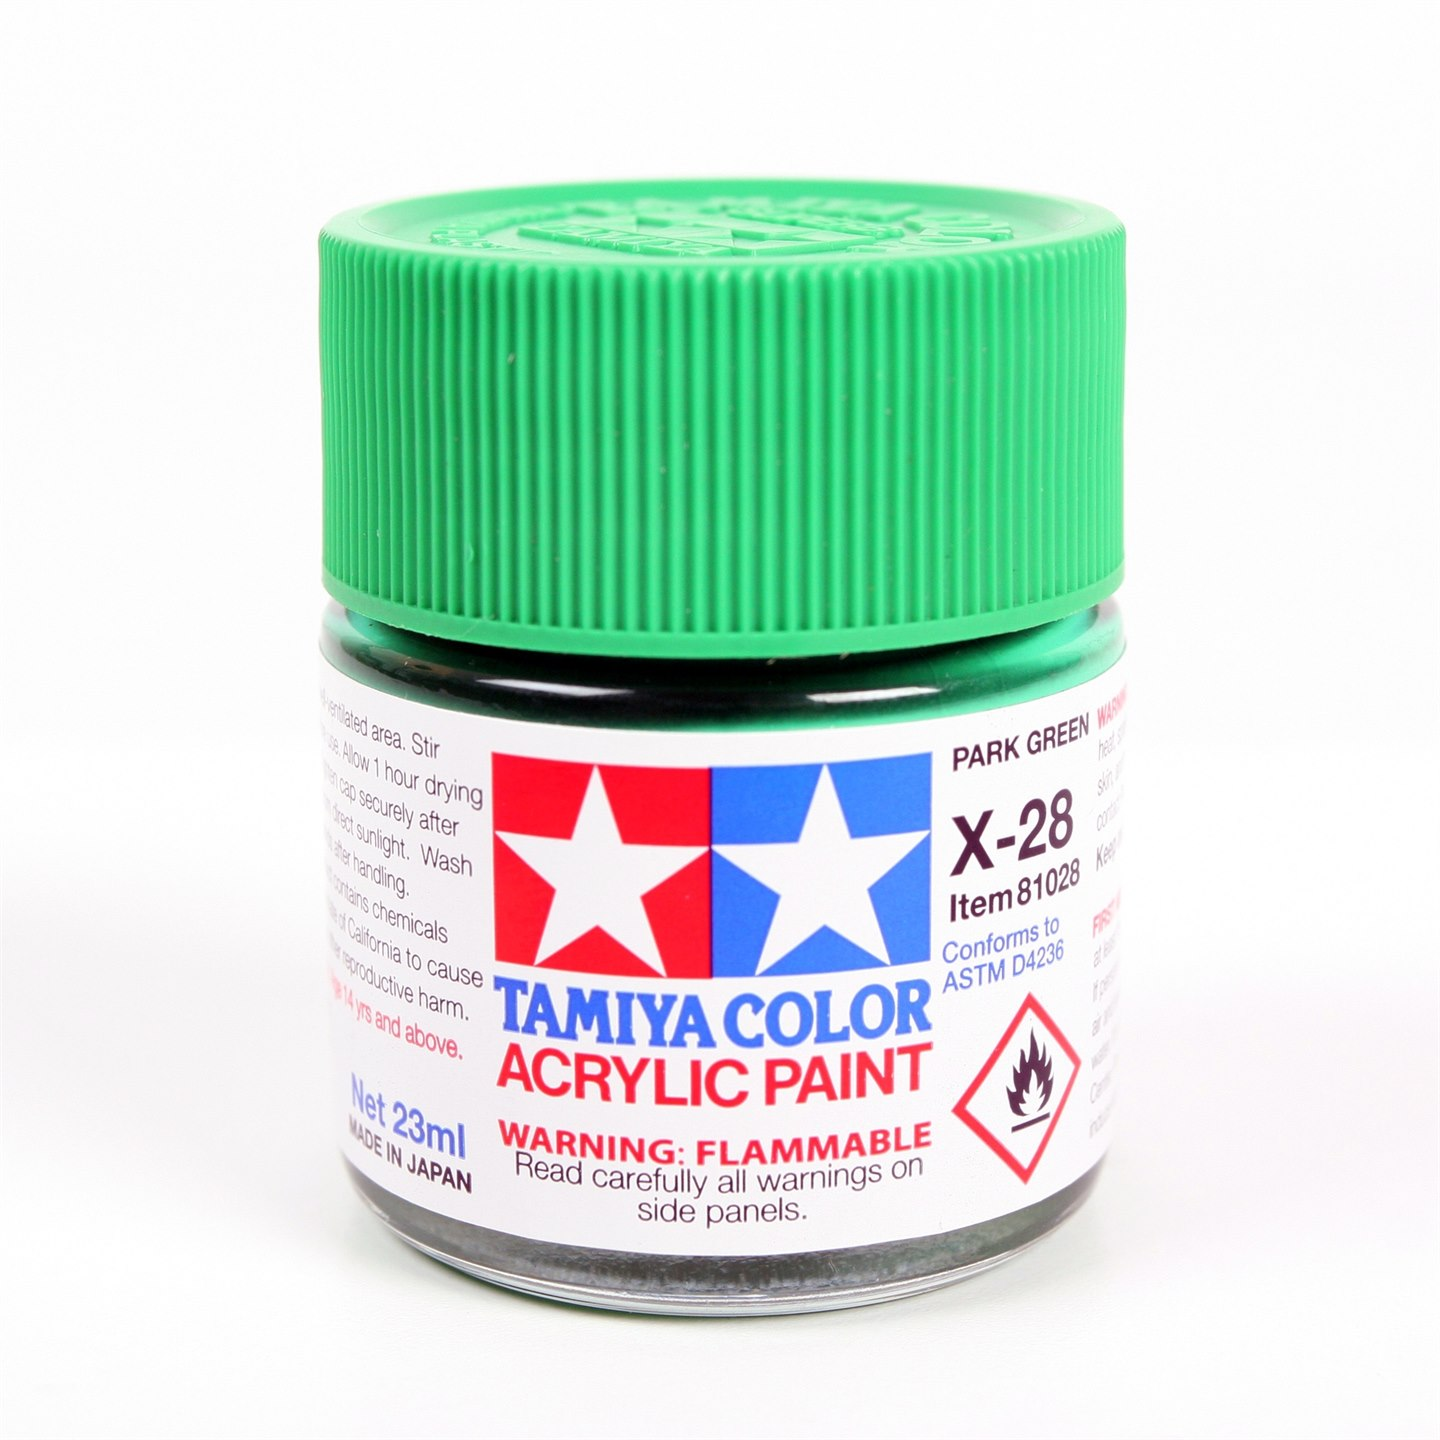 Tamiya Color Acrylic Paint X-28 (Park Green) (23ml)